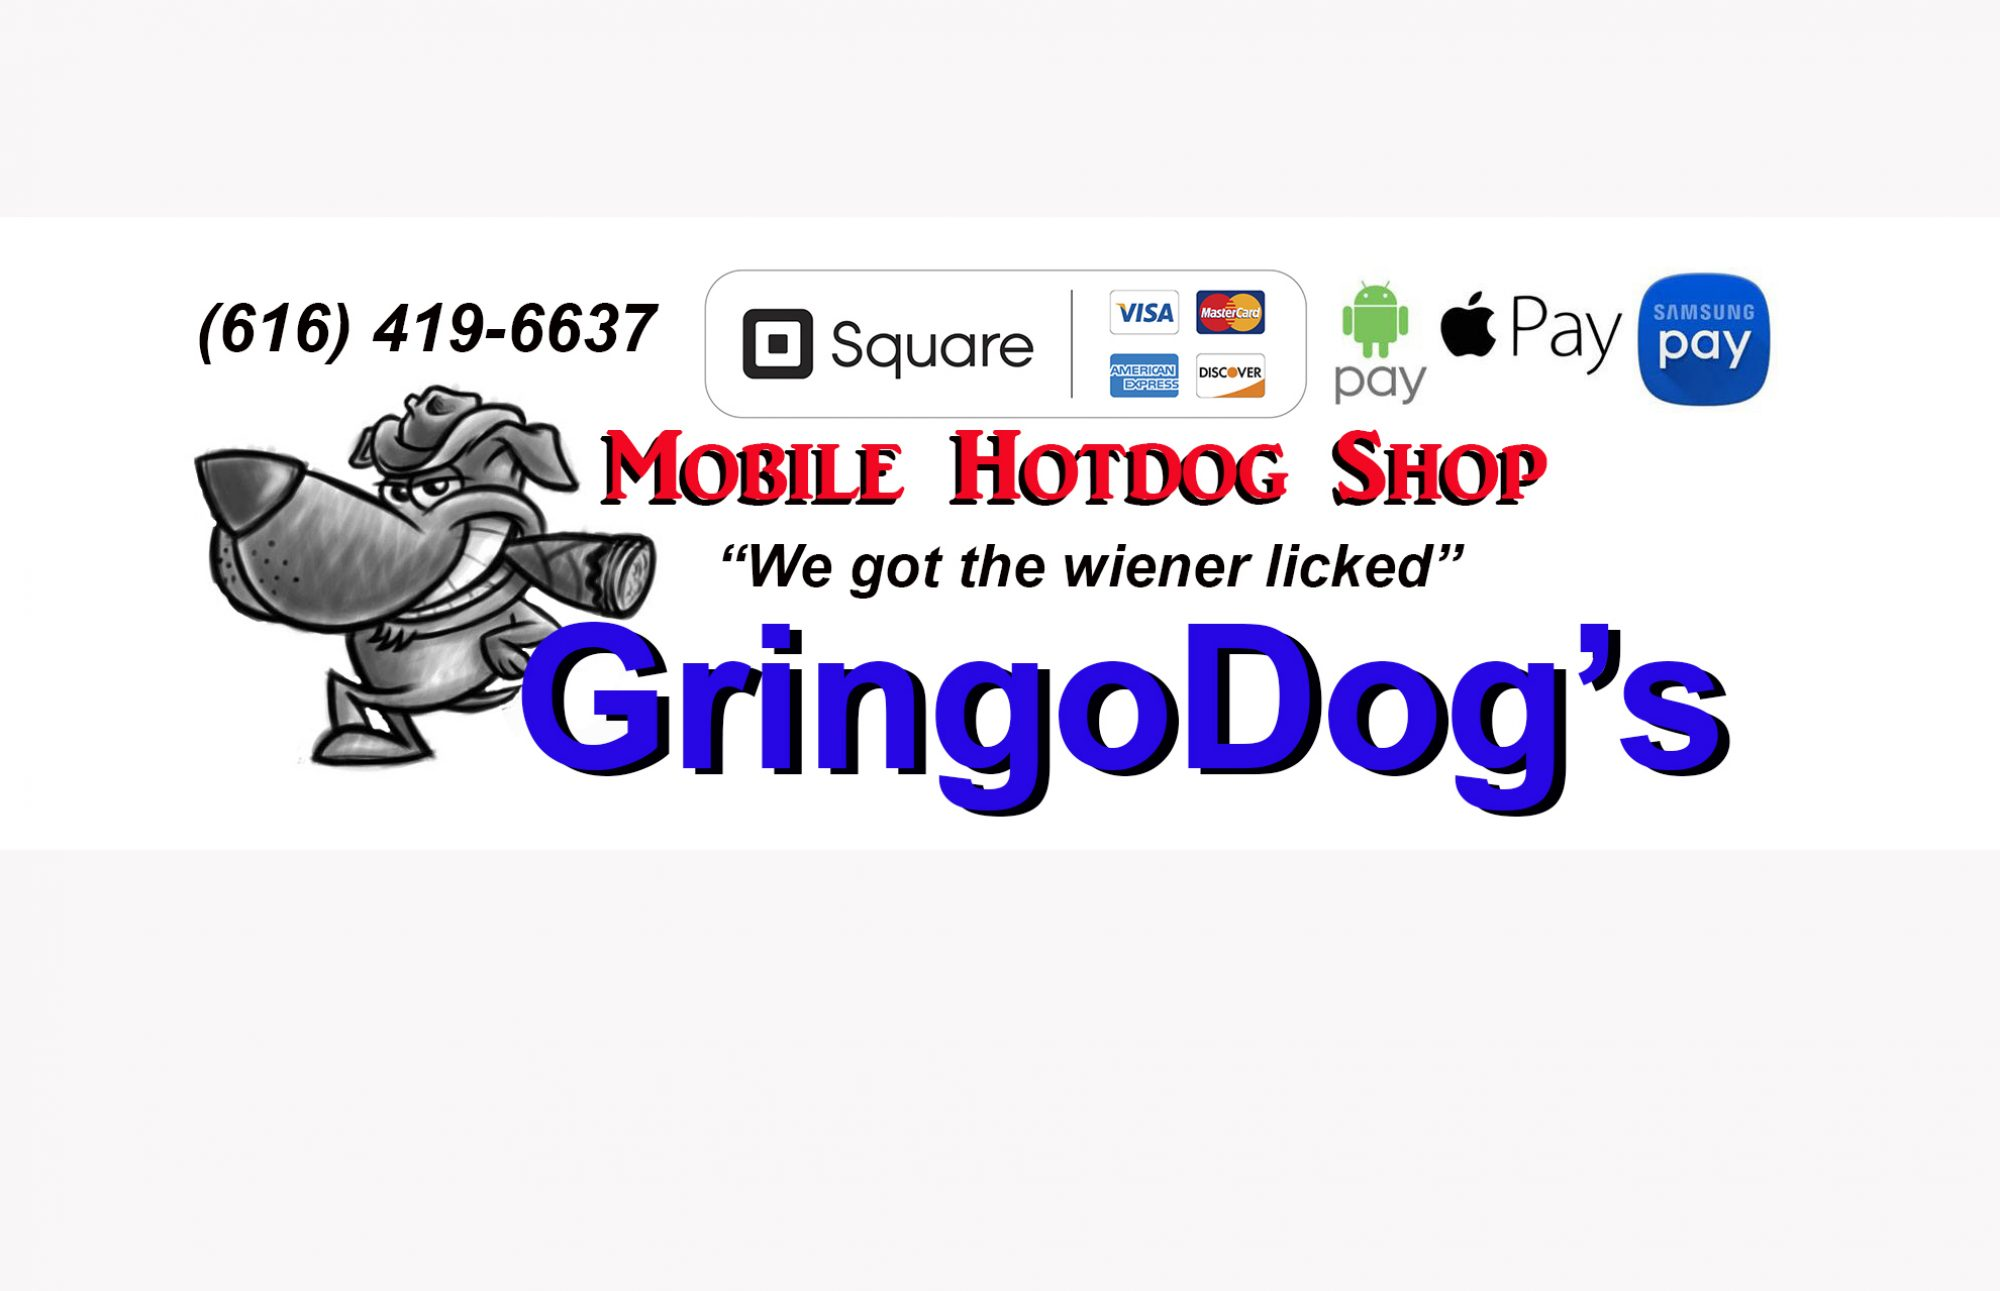 Gringo Dog's Mobile Hotdog Shop